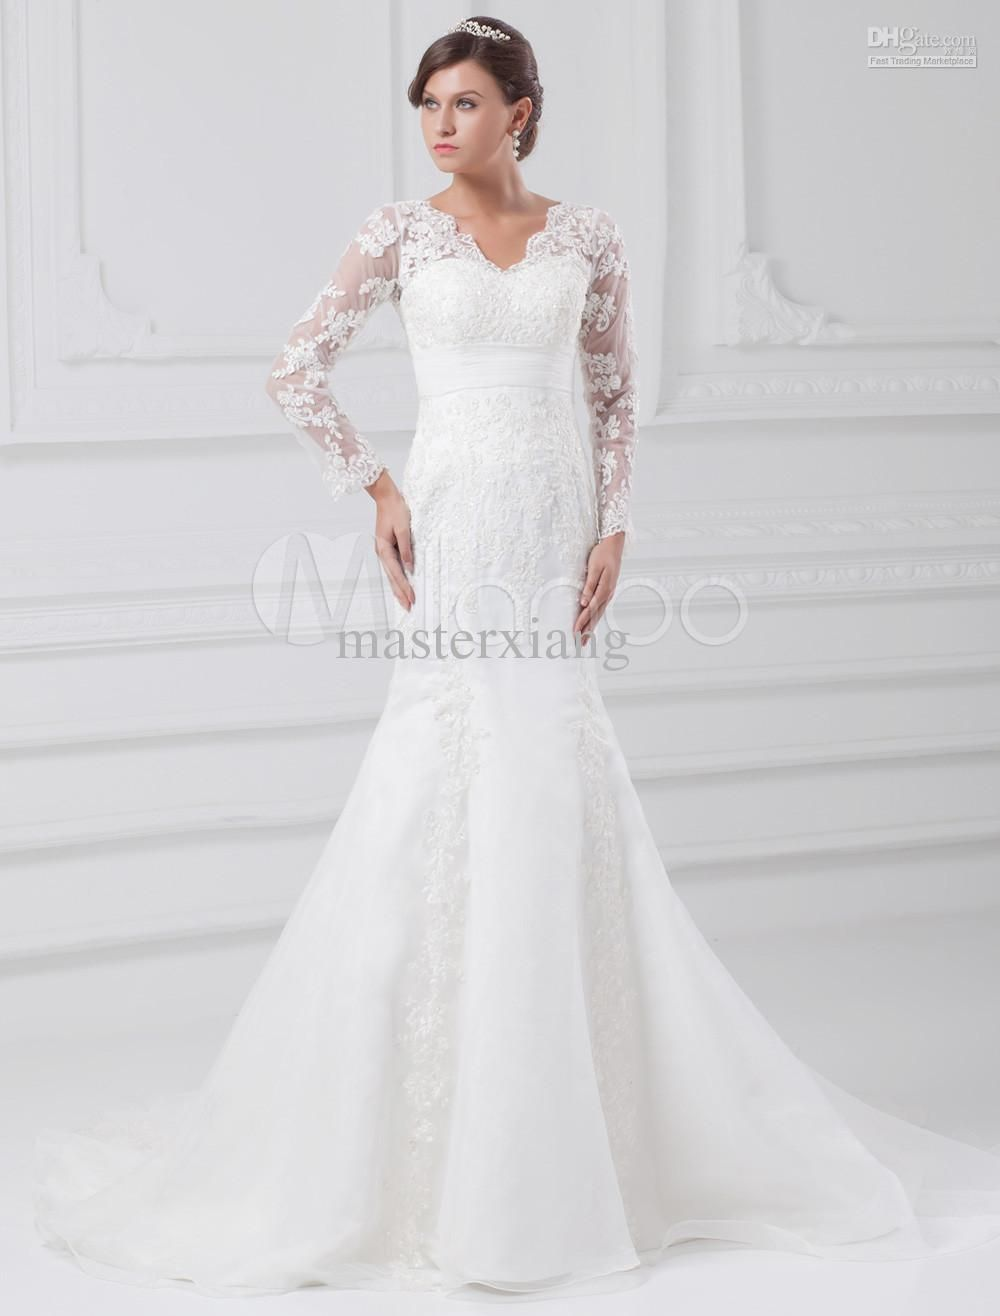 Wedding dresses v neck  Charming White Mermaid VNeck Lace long sleeve Floor length